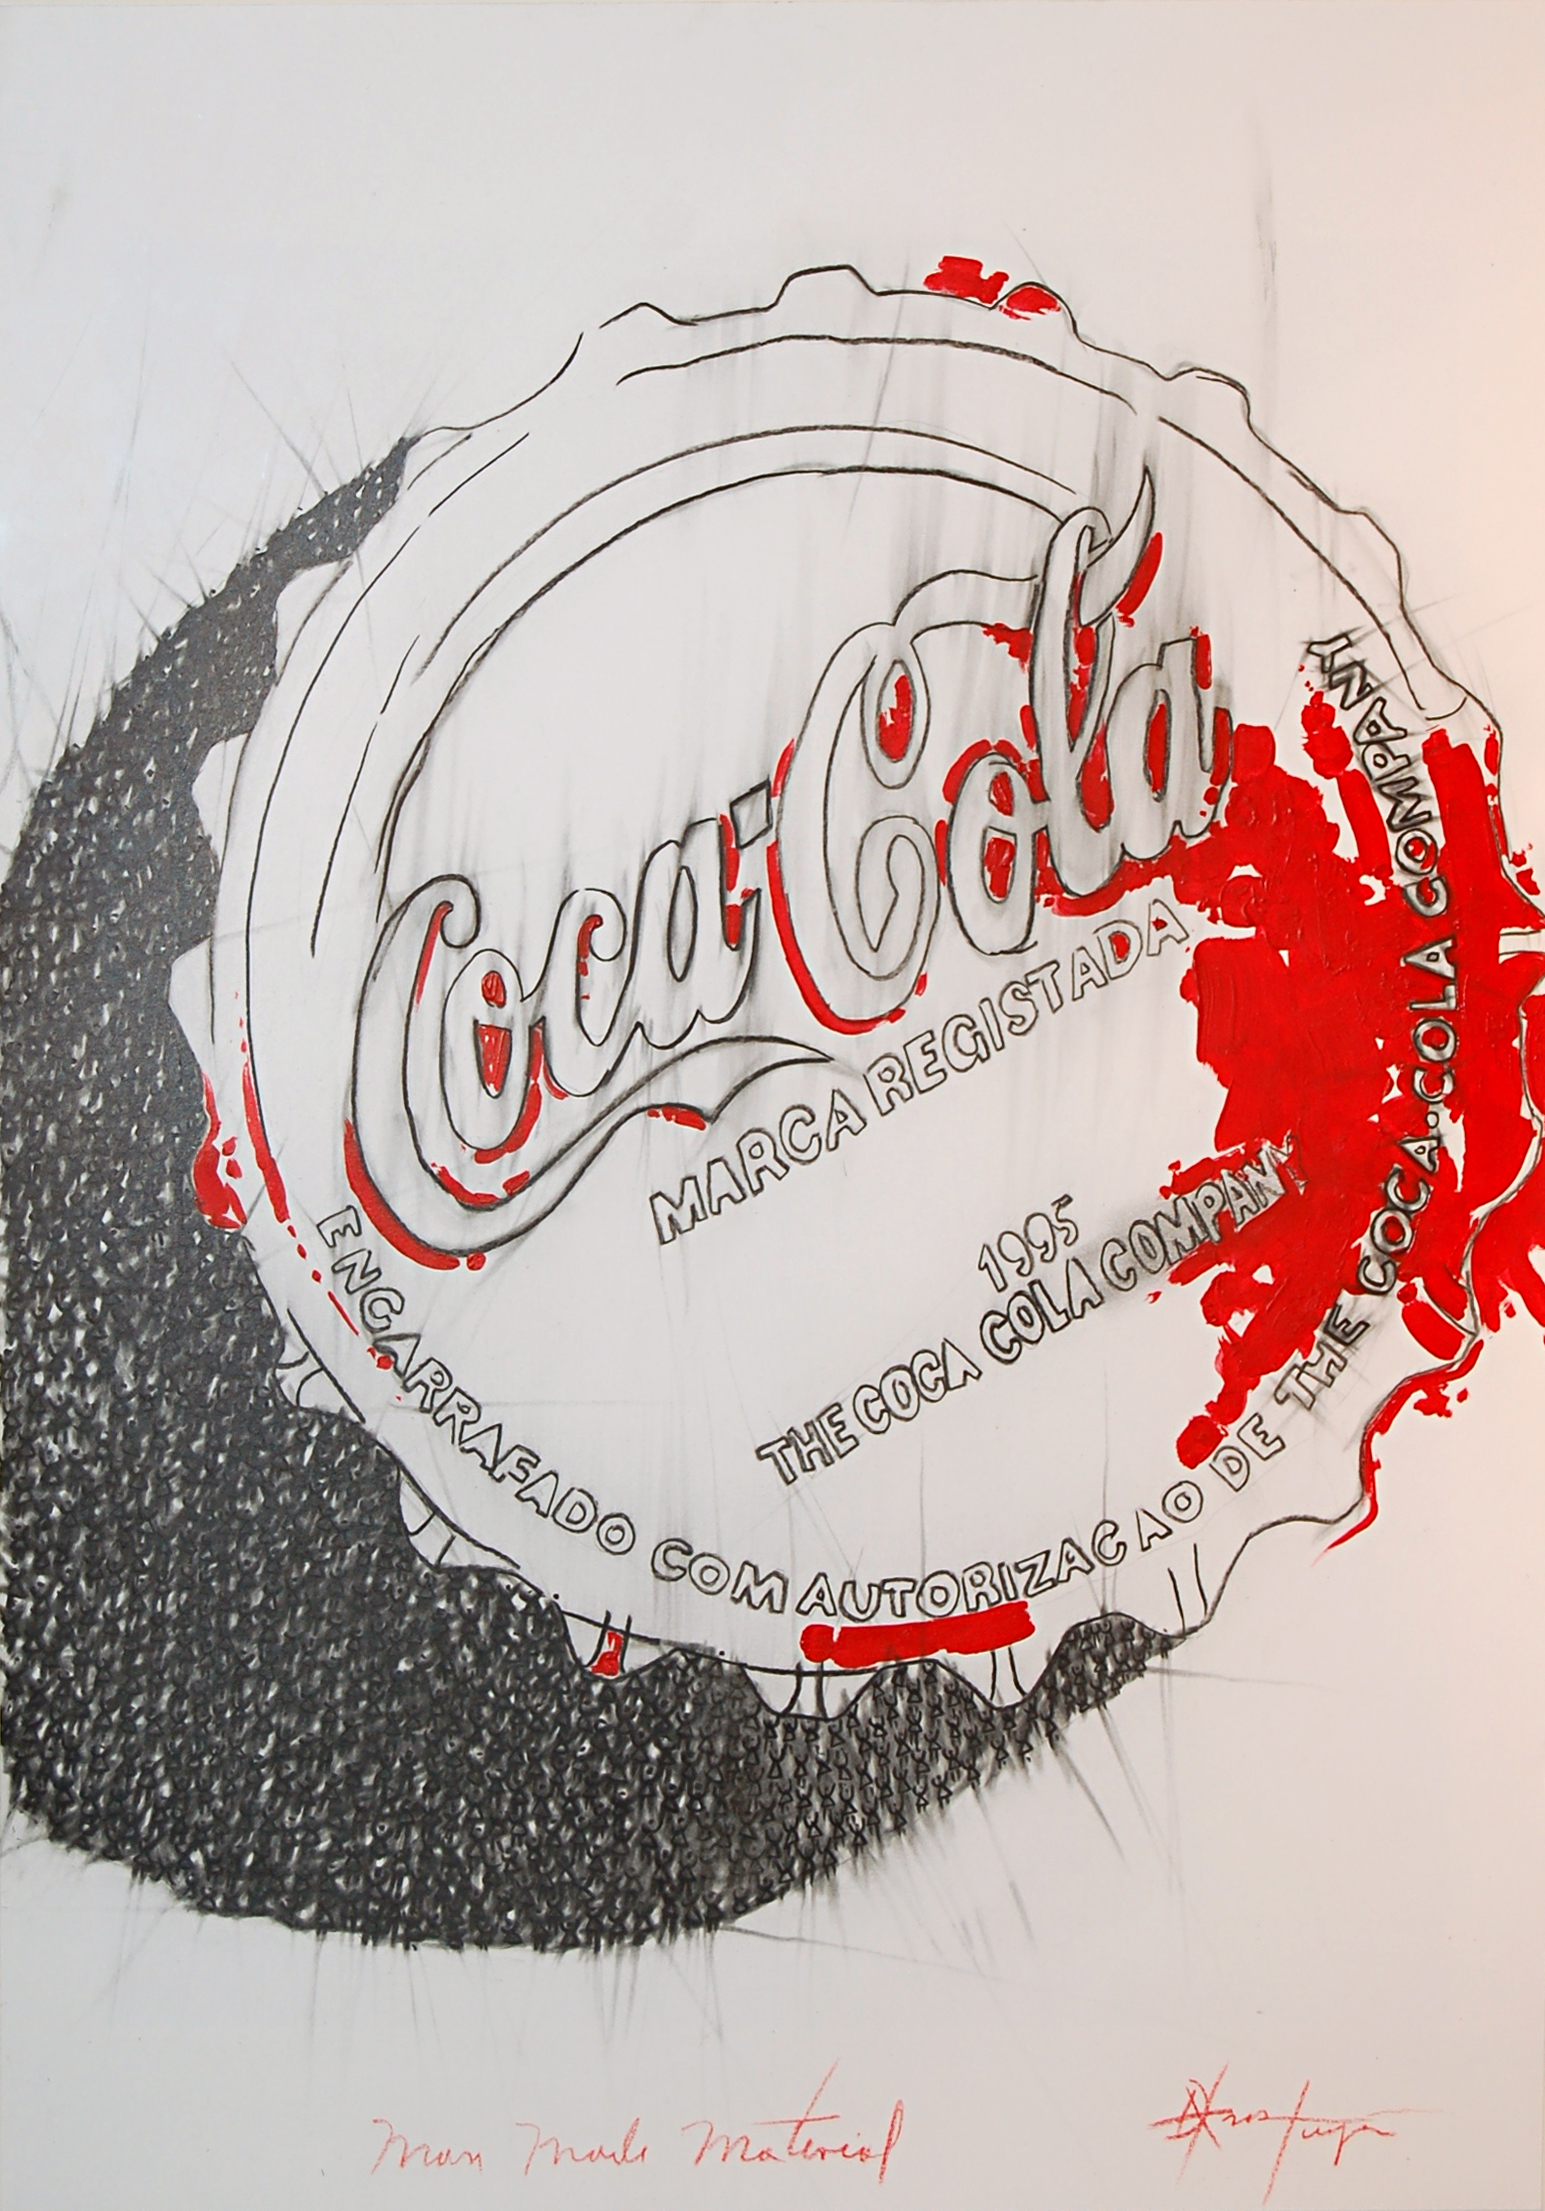 Man Made Material Series #1 (Coca Cola), Charcoal and Watercolour on Paper, 2014, 45cm x 61cm